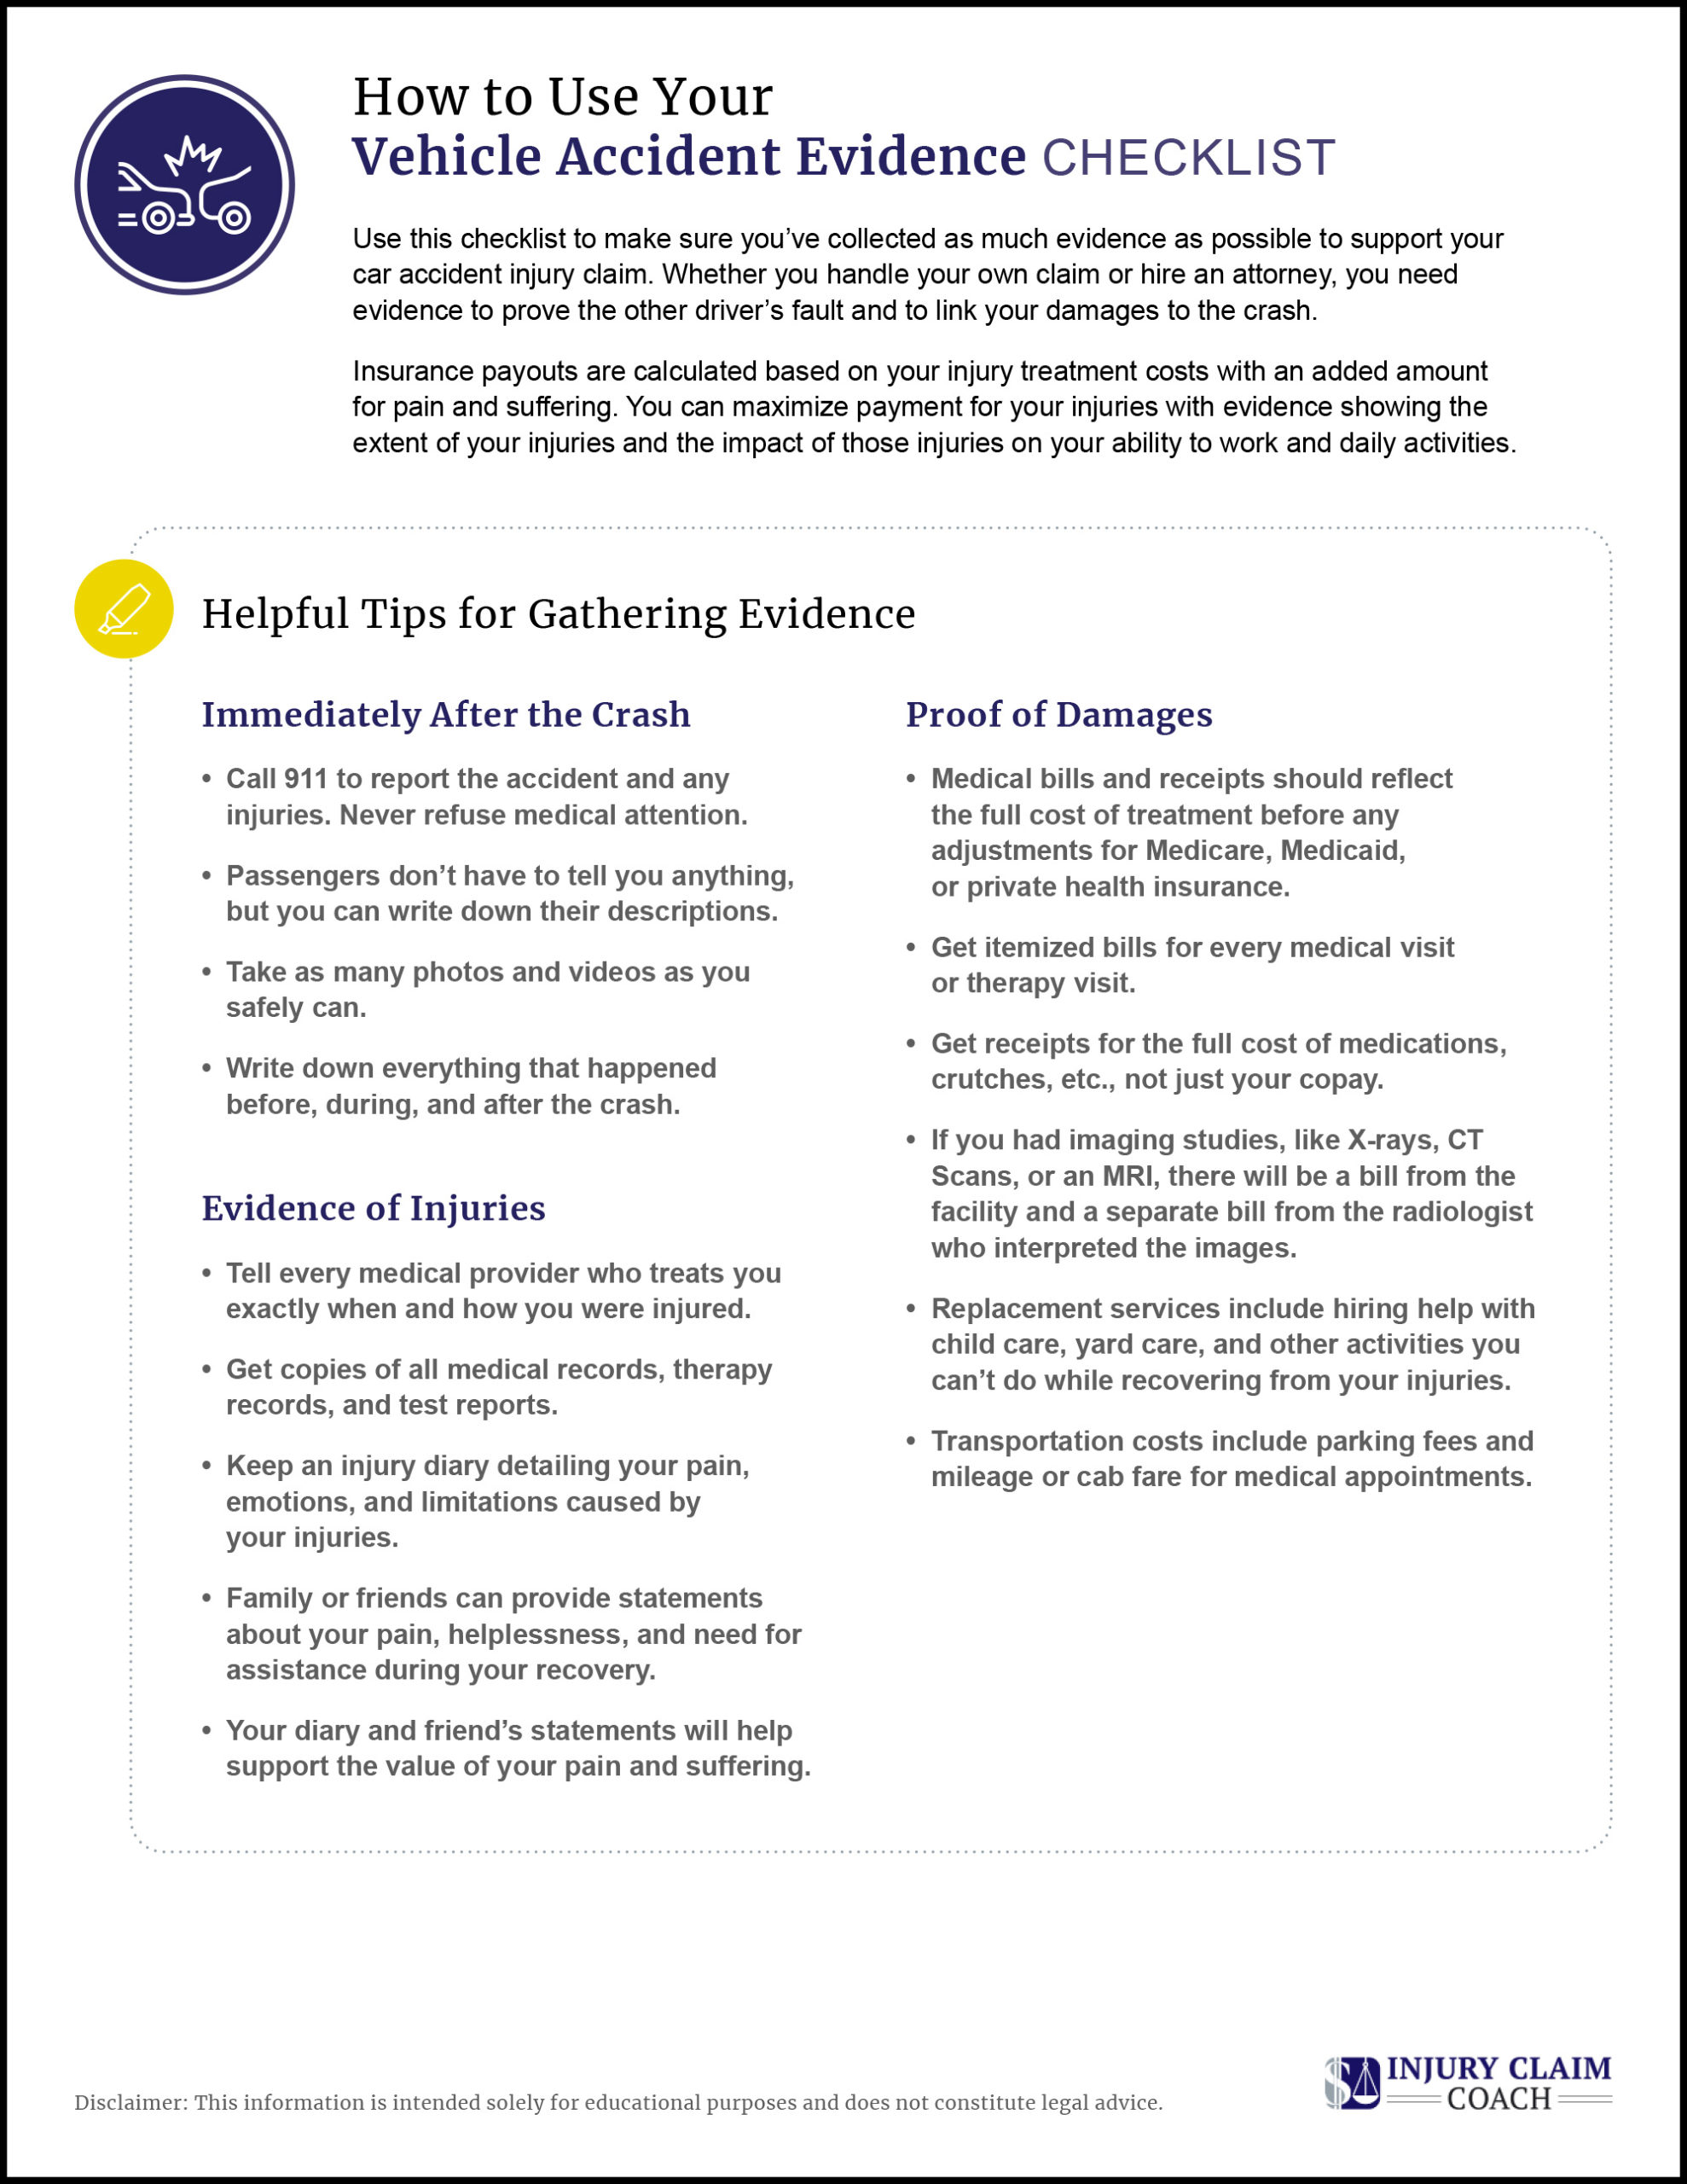 Vehicle Accident Evidence Checklist Tips